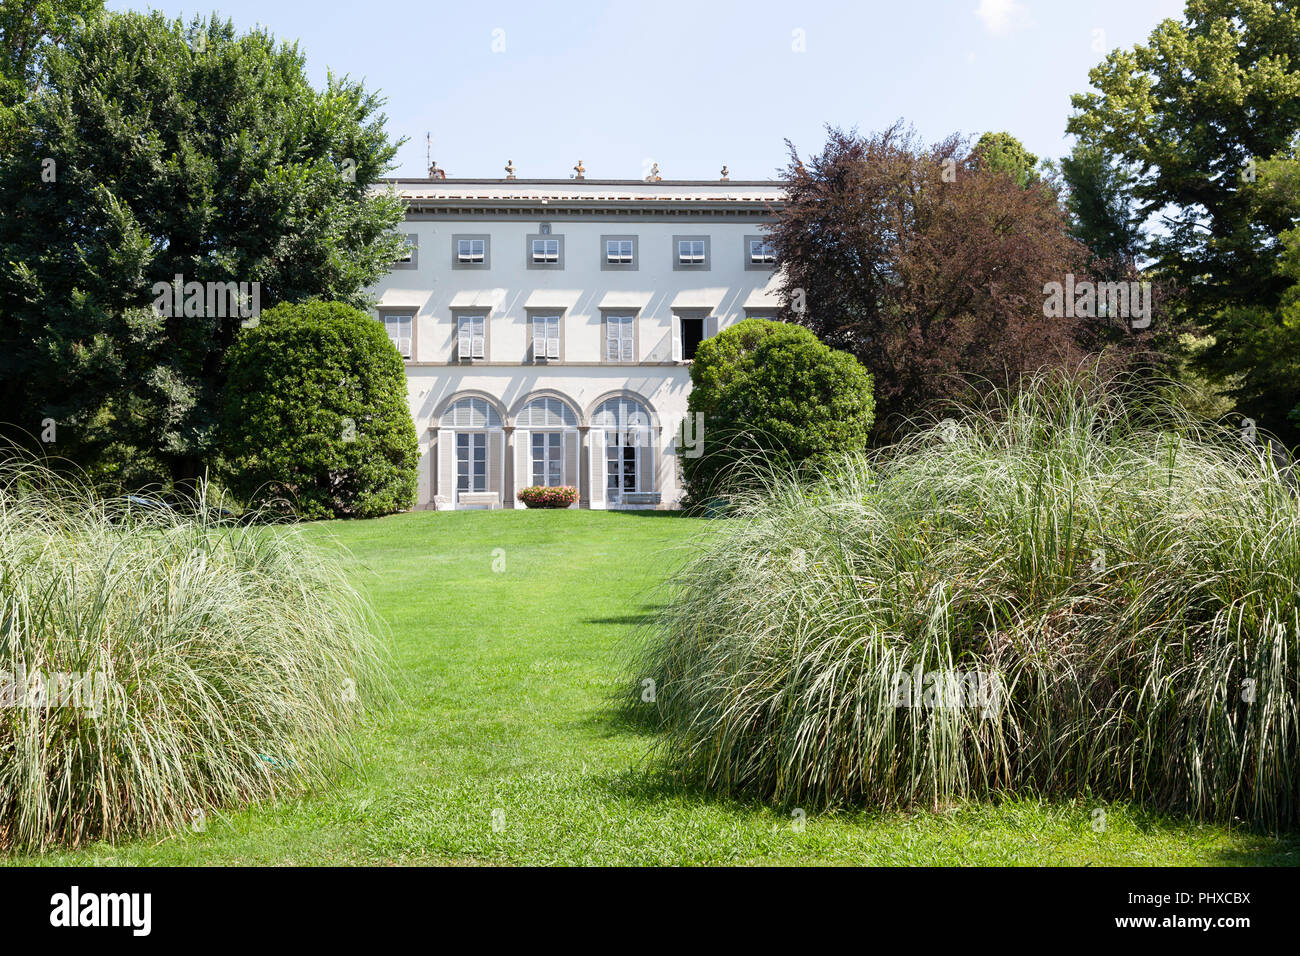 The Grabau villa, at Lucca (Tuscany - Italy). Neoclassical building, the villa presents to visitors to see a nine hectare landscaped botanical garden. - Stock Image